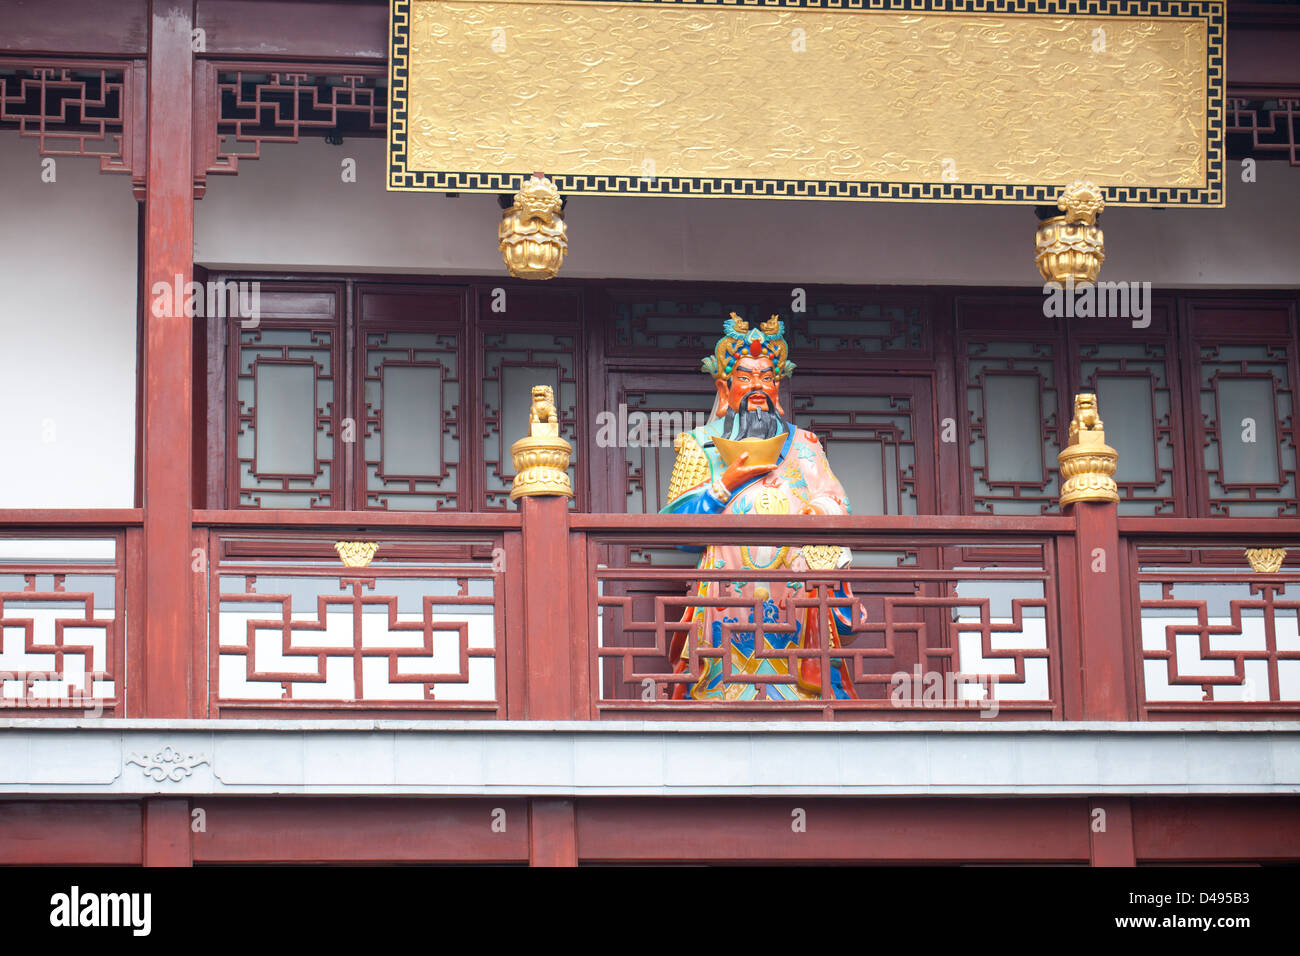 Statue Of Chinese fortune god standing in front of temple - Stock Image